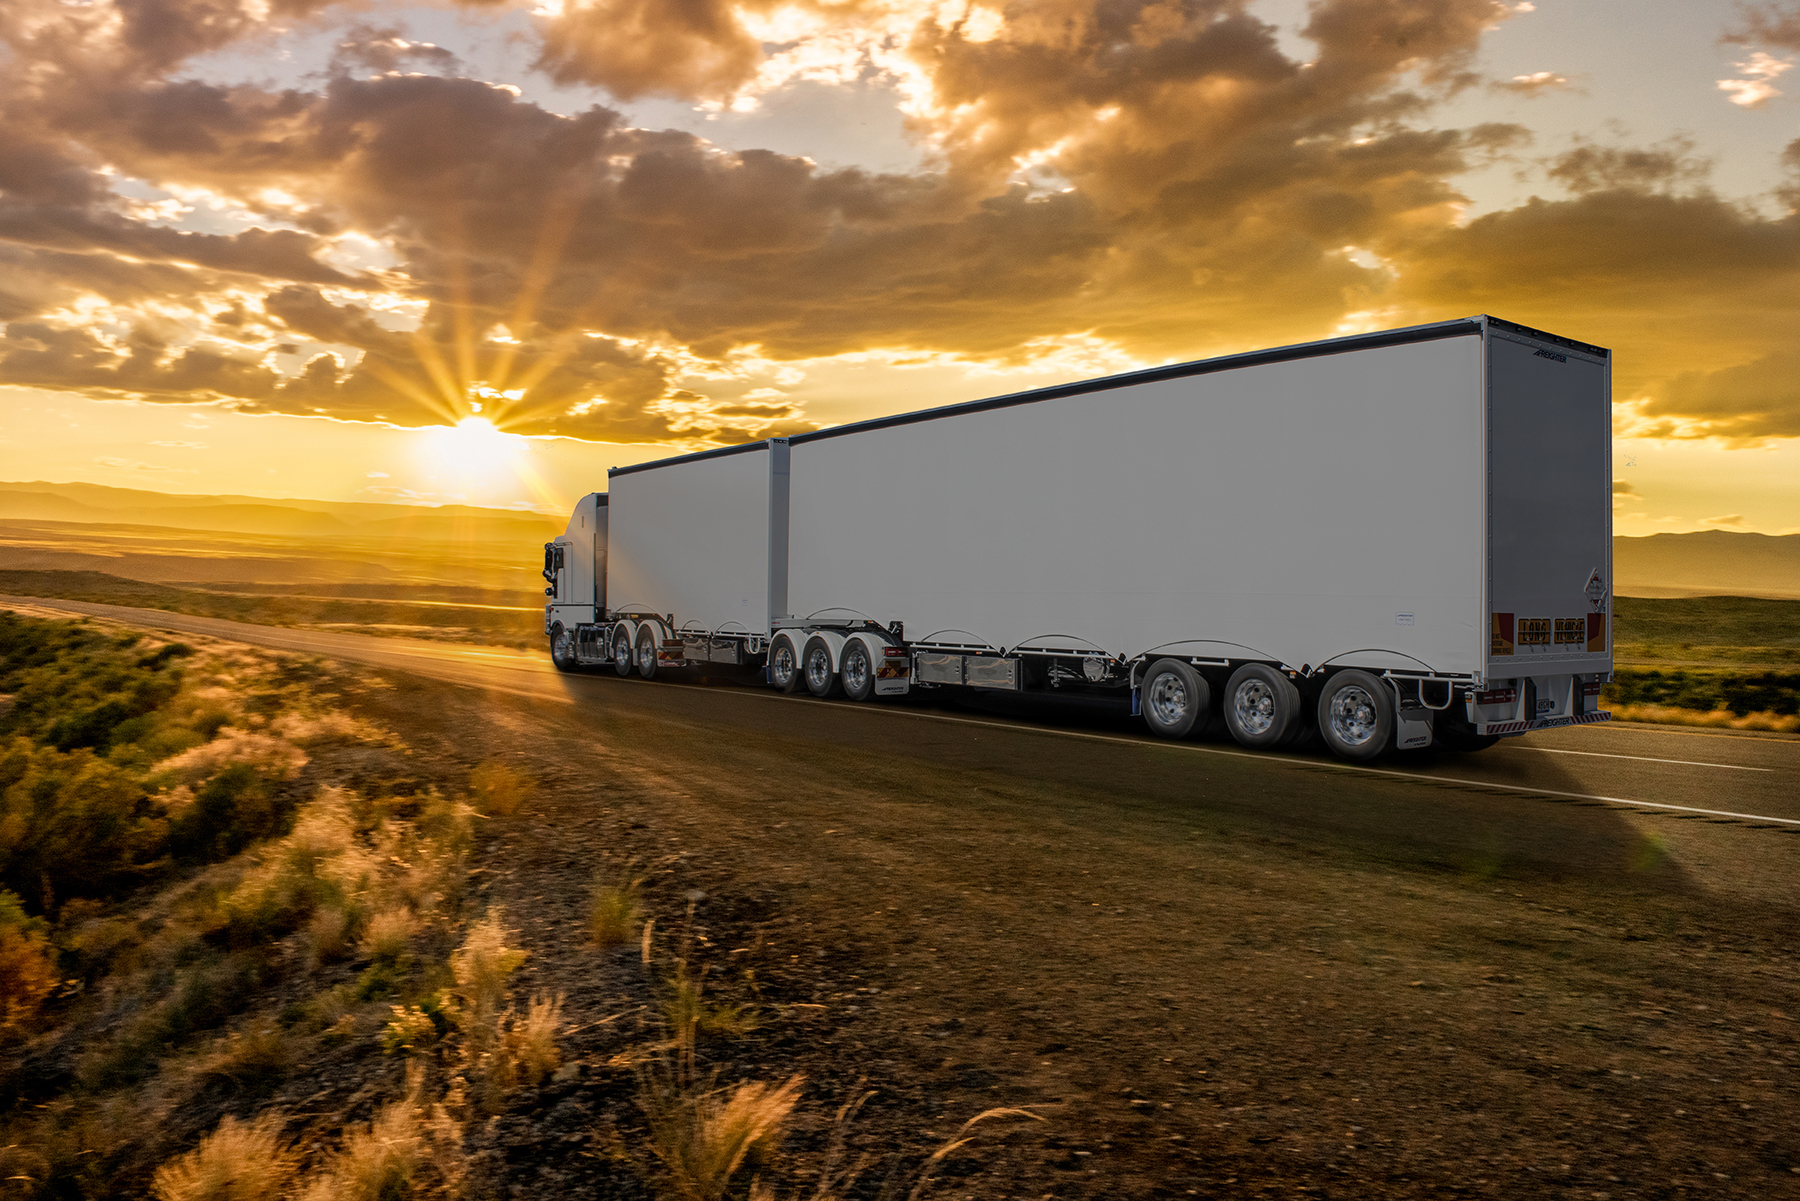 Semi-Truck on an Interstate Highway at Dusk with Cloudscape